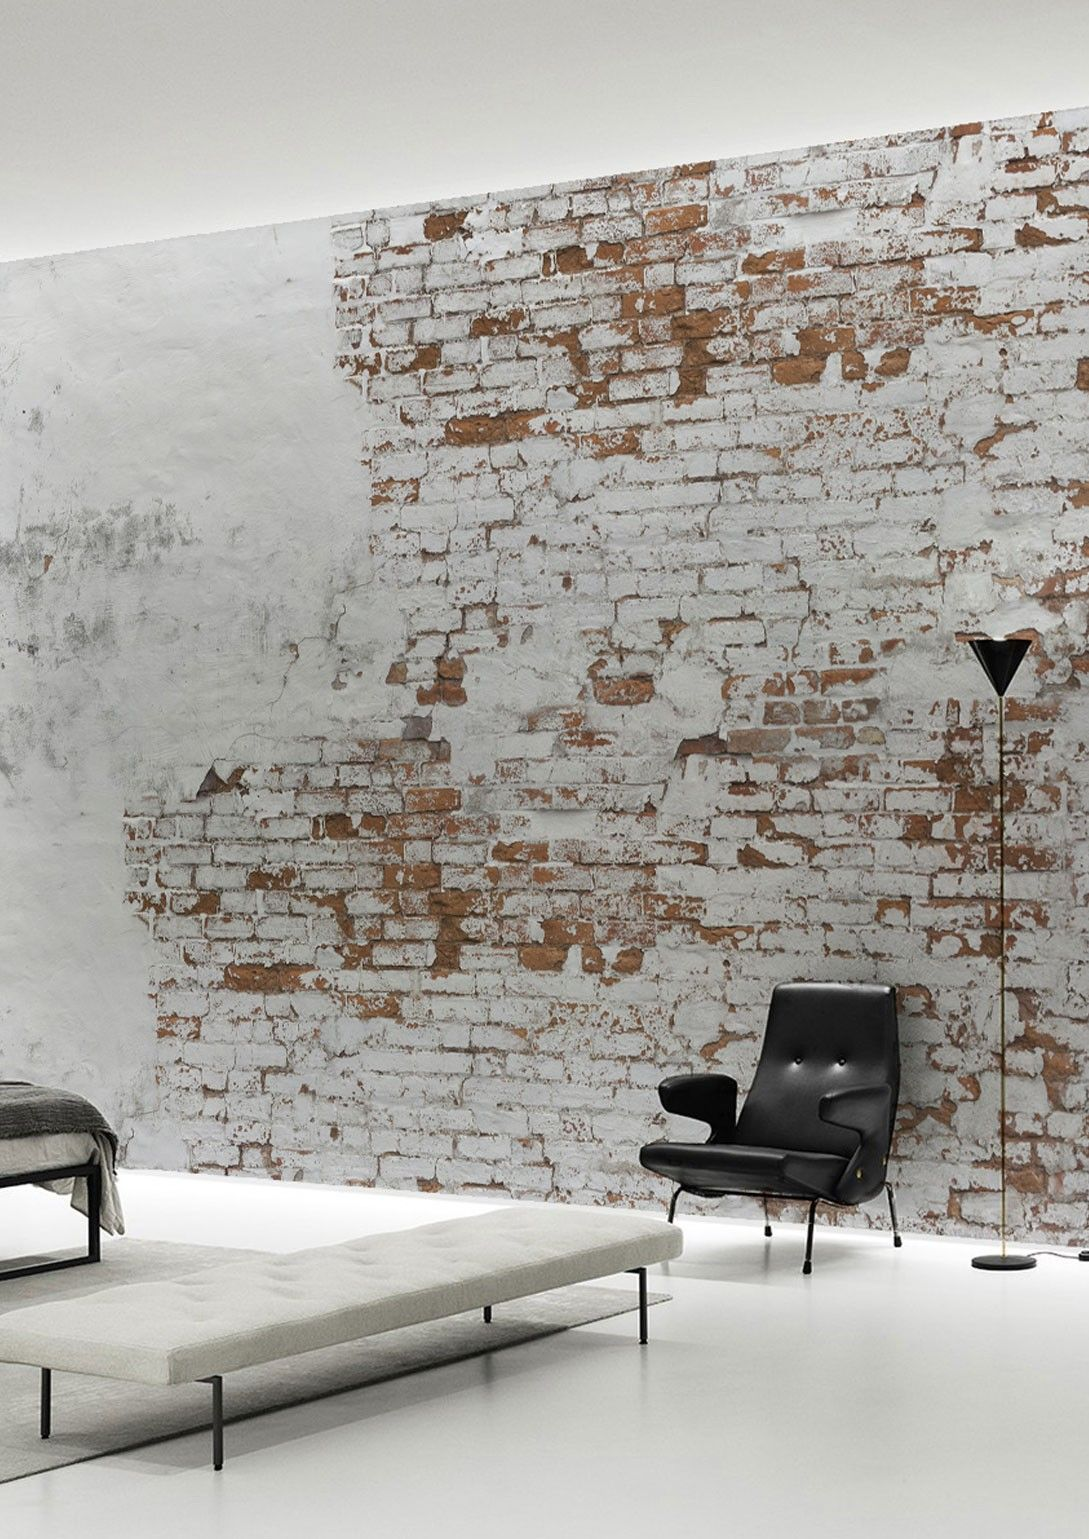 Design My Own Living Room Online Free: Create Your Own Industrial Wall In No Time With This